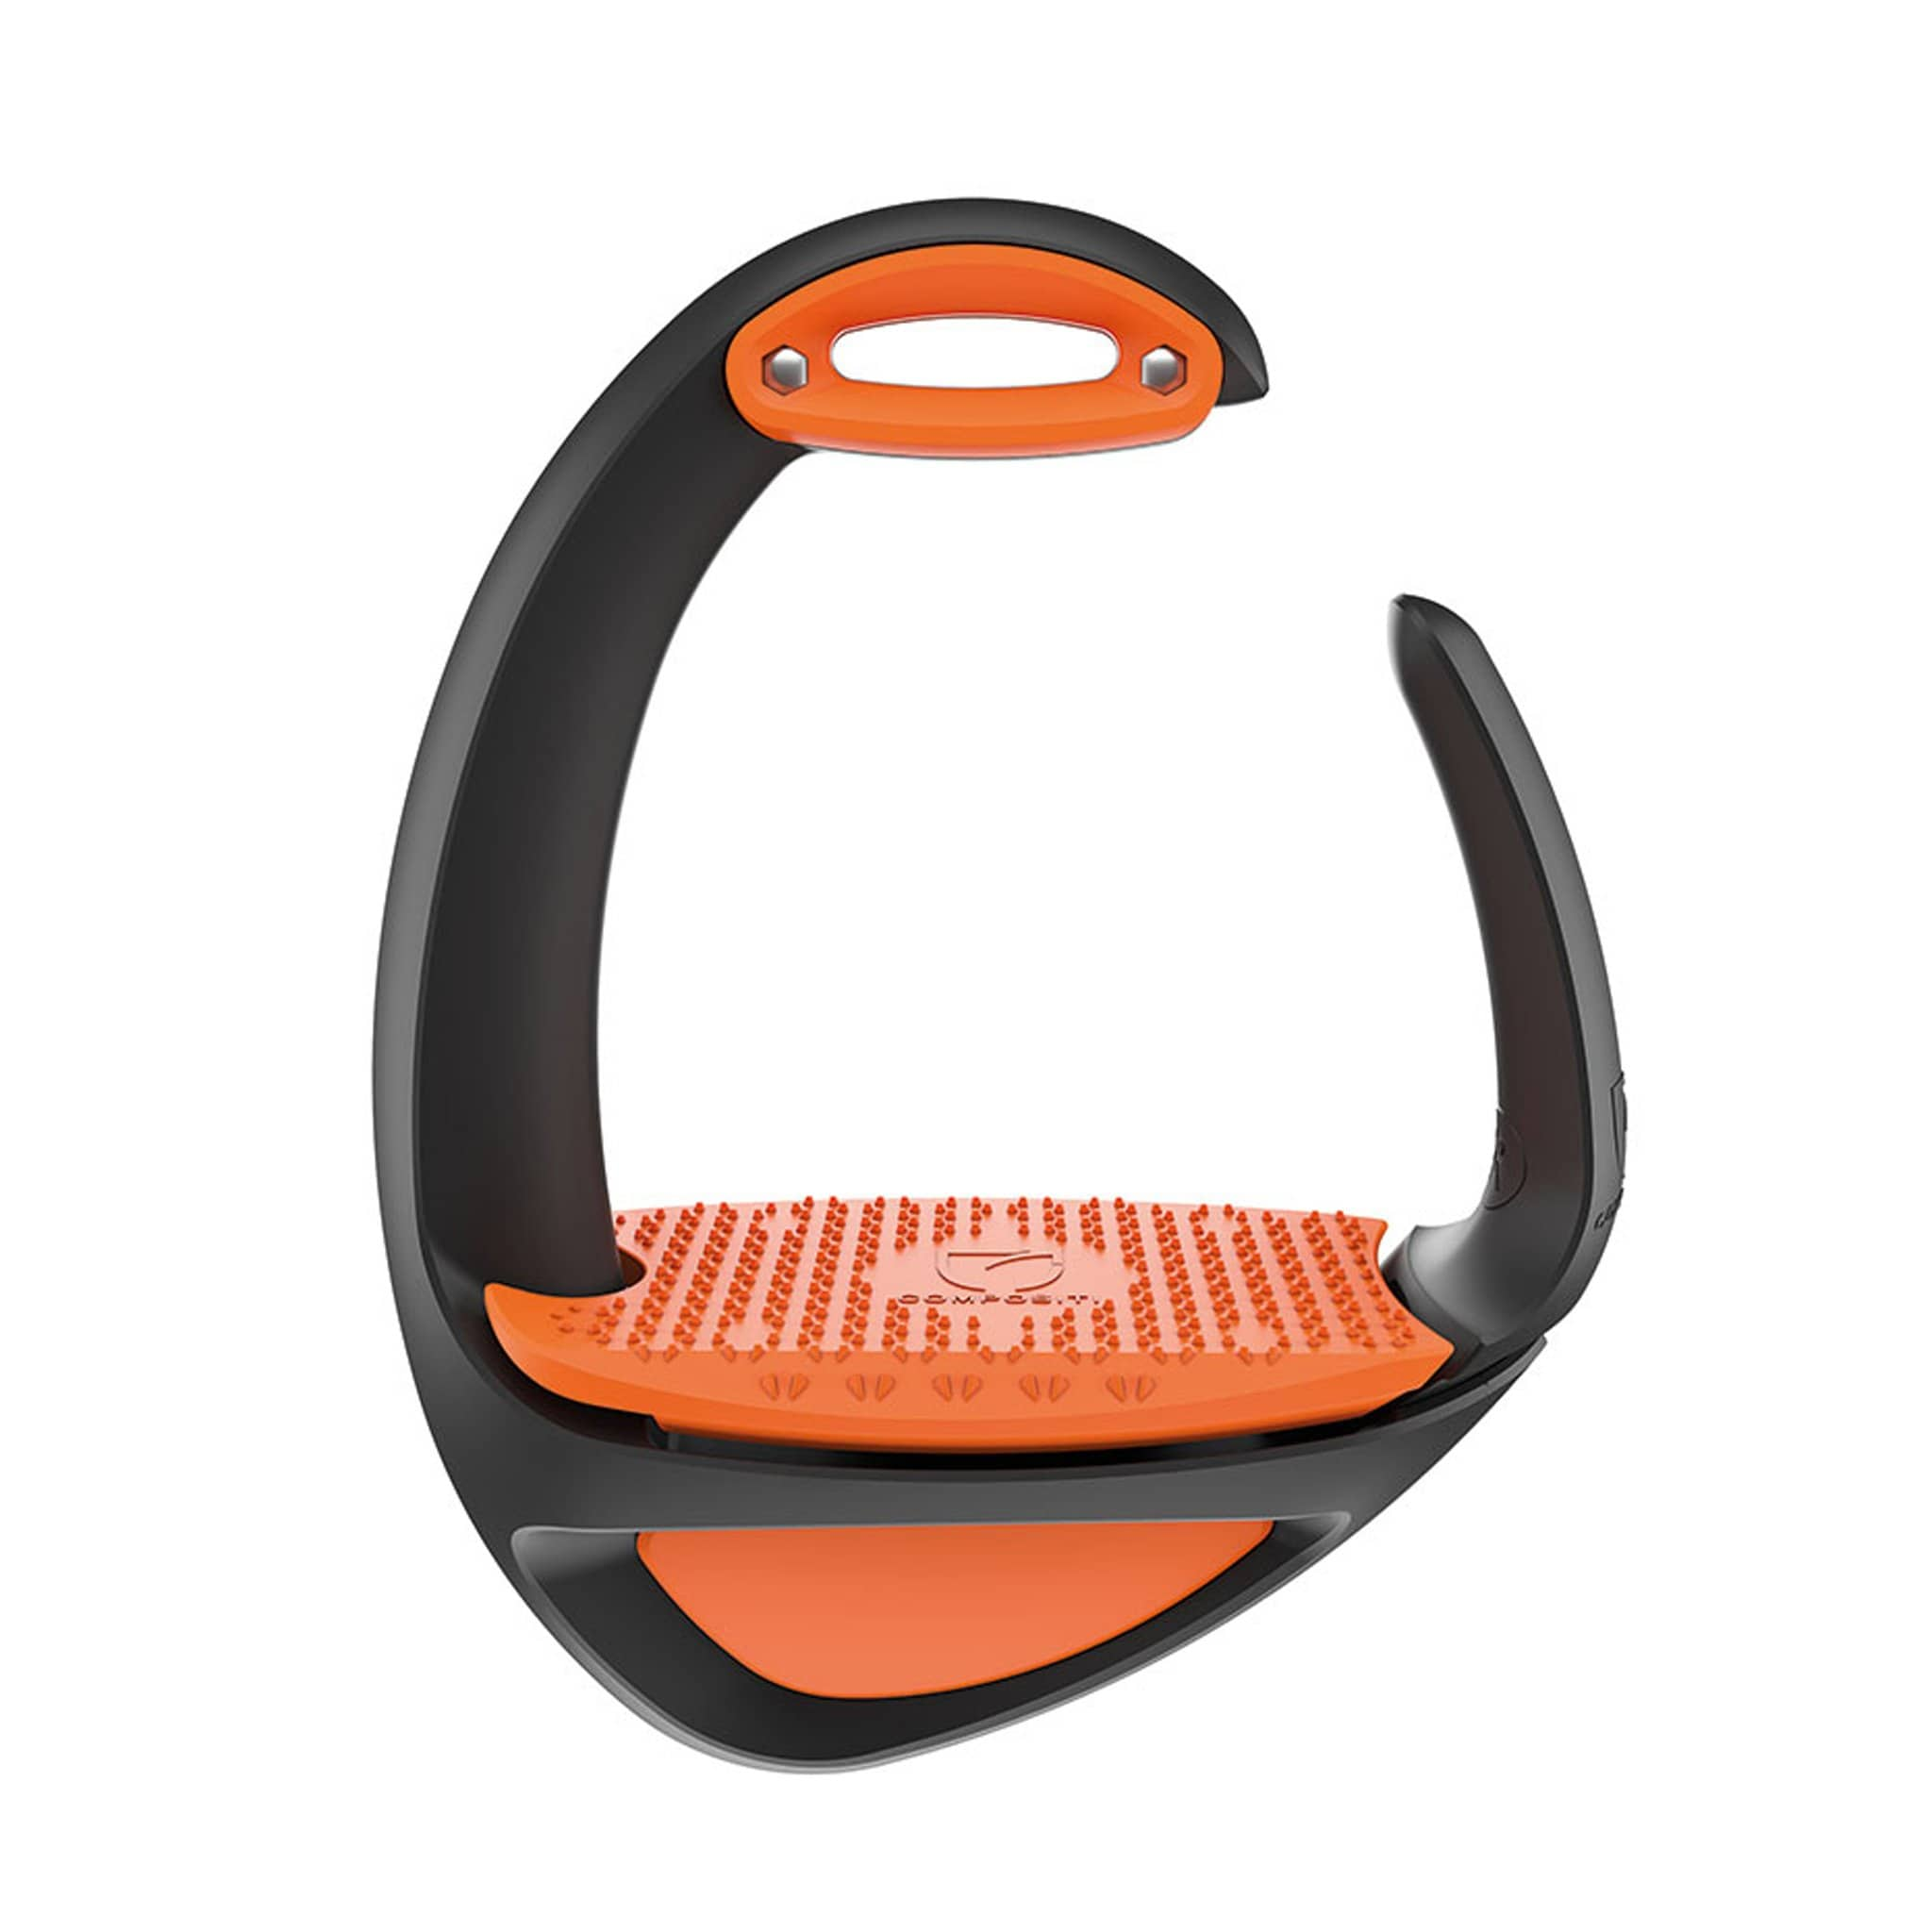 Shires Compositi Ellipse Comfort Stirrups Orange 696